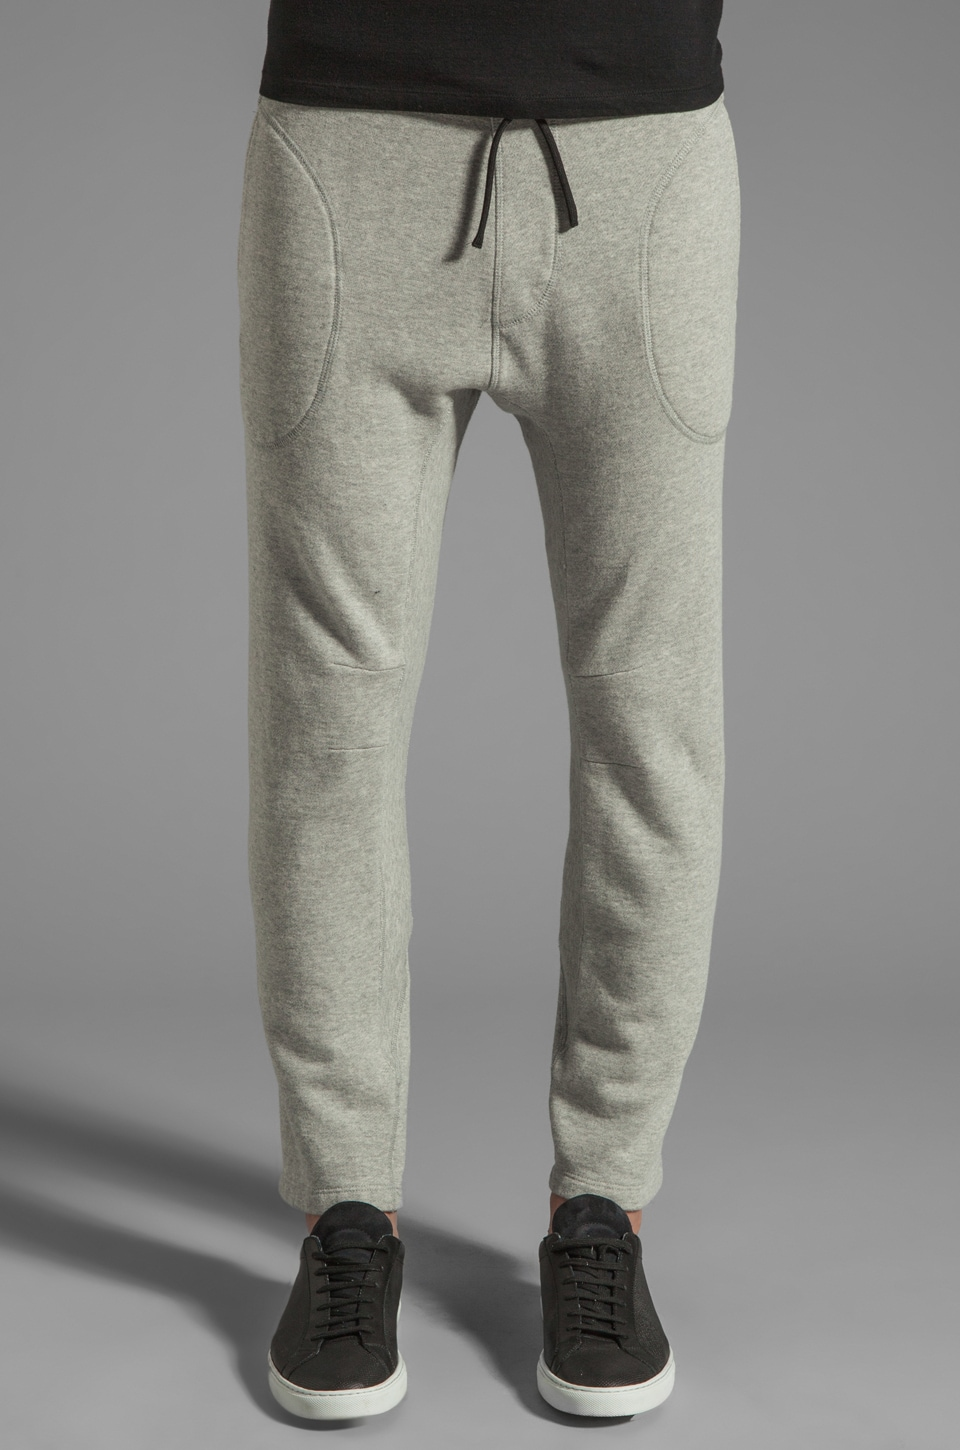 ISAORA French Terry Sweatpant With Engineered Seams in Light Grey